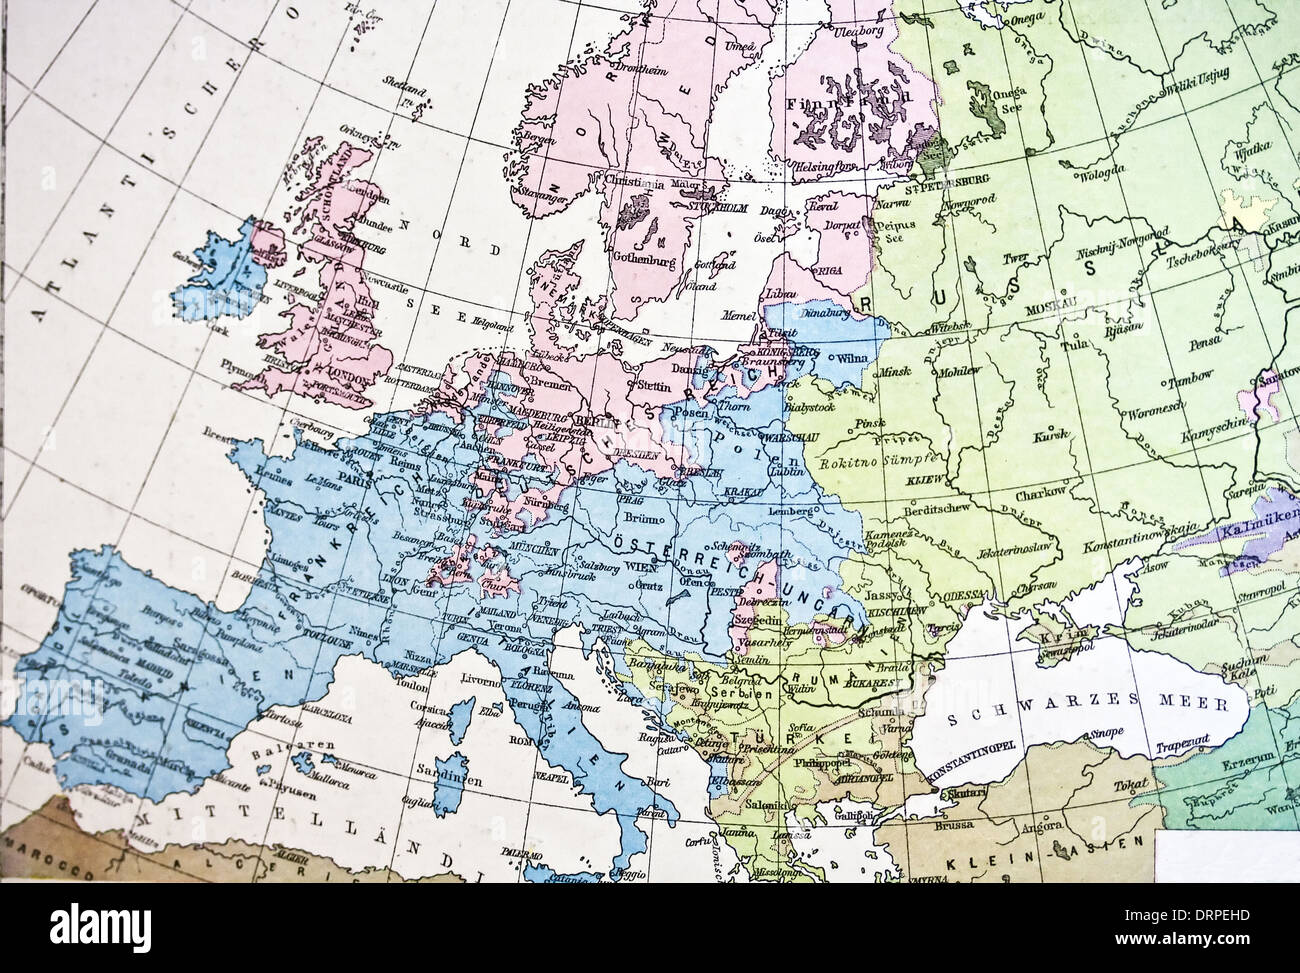 ancient map or europe handmade in 1881 stock photo royalty free